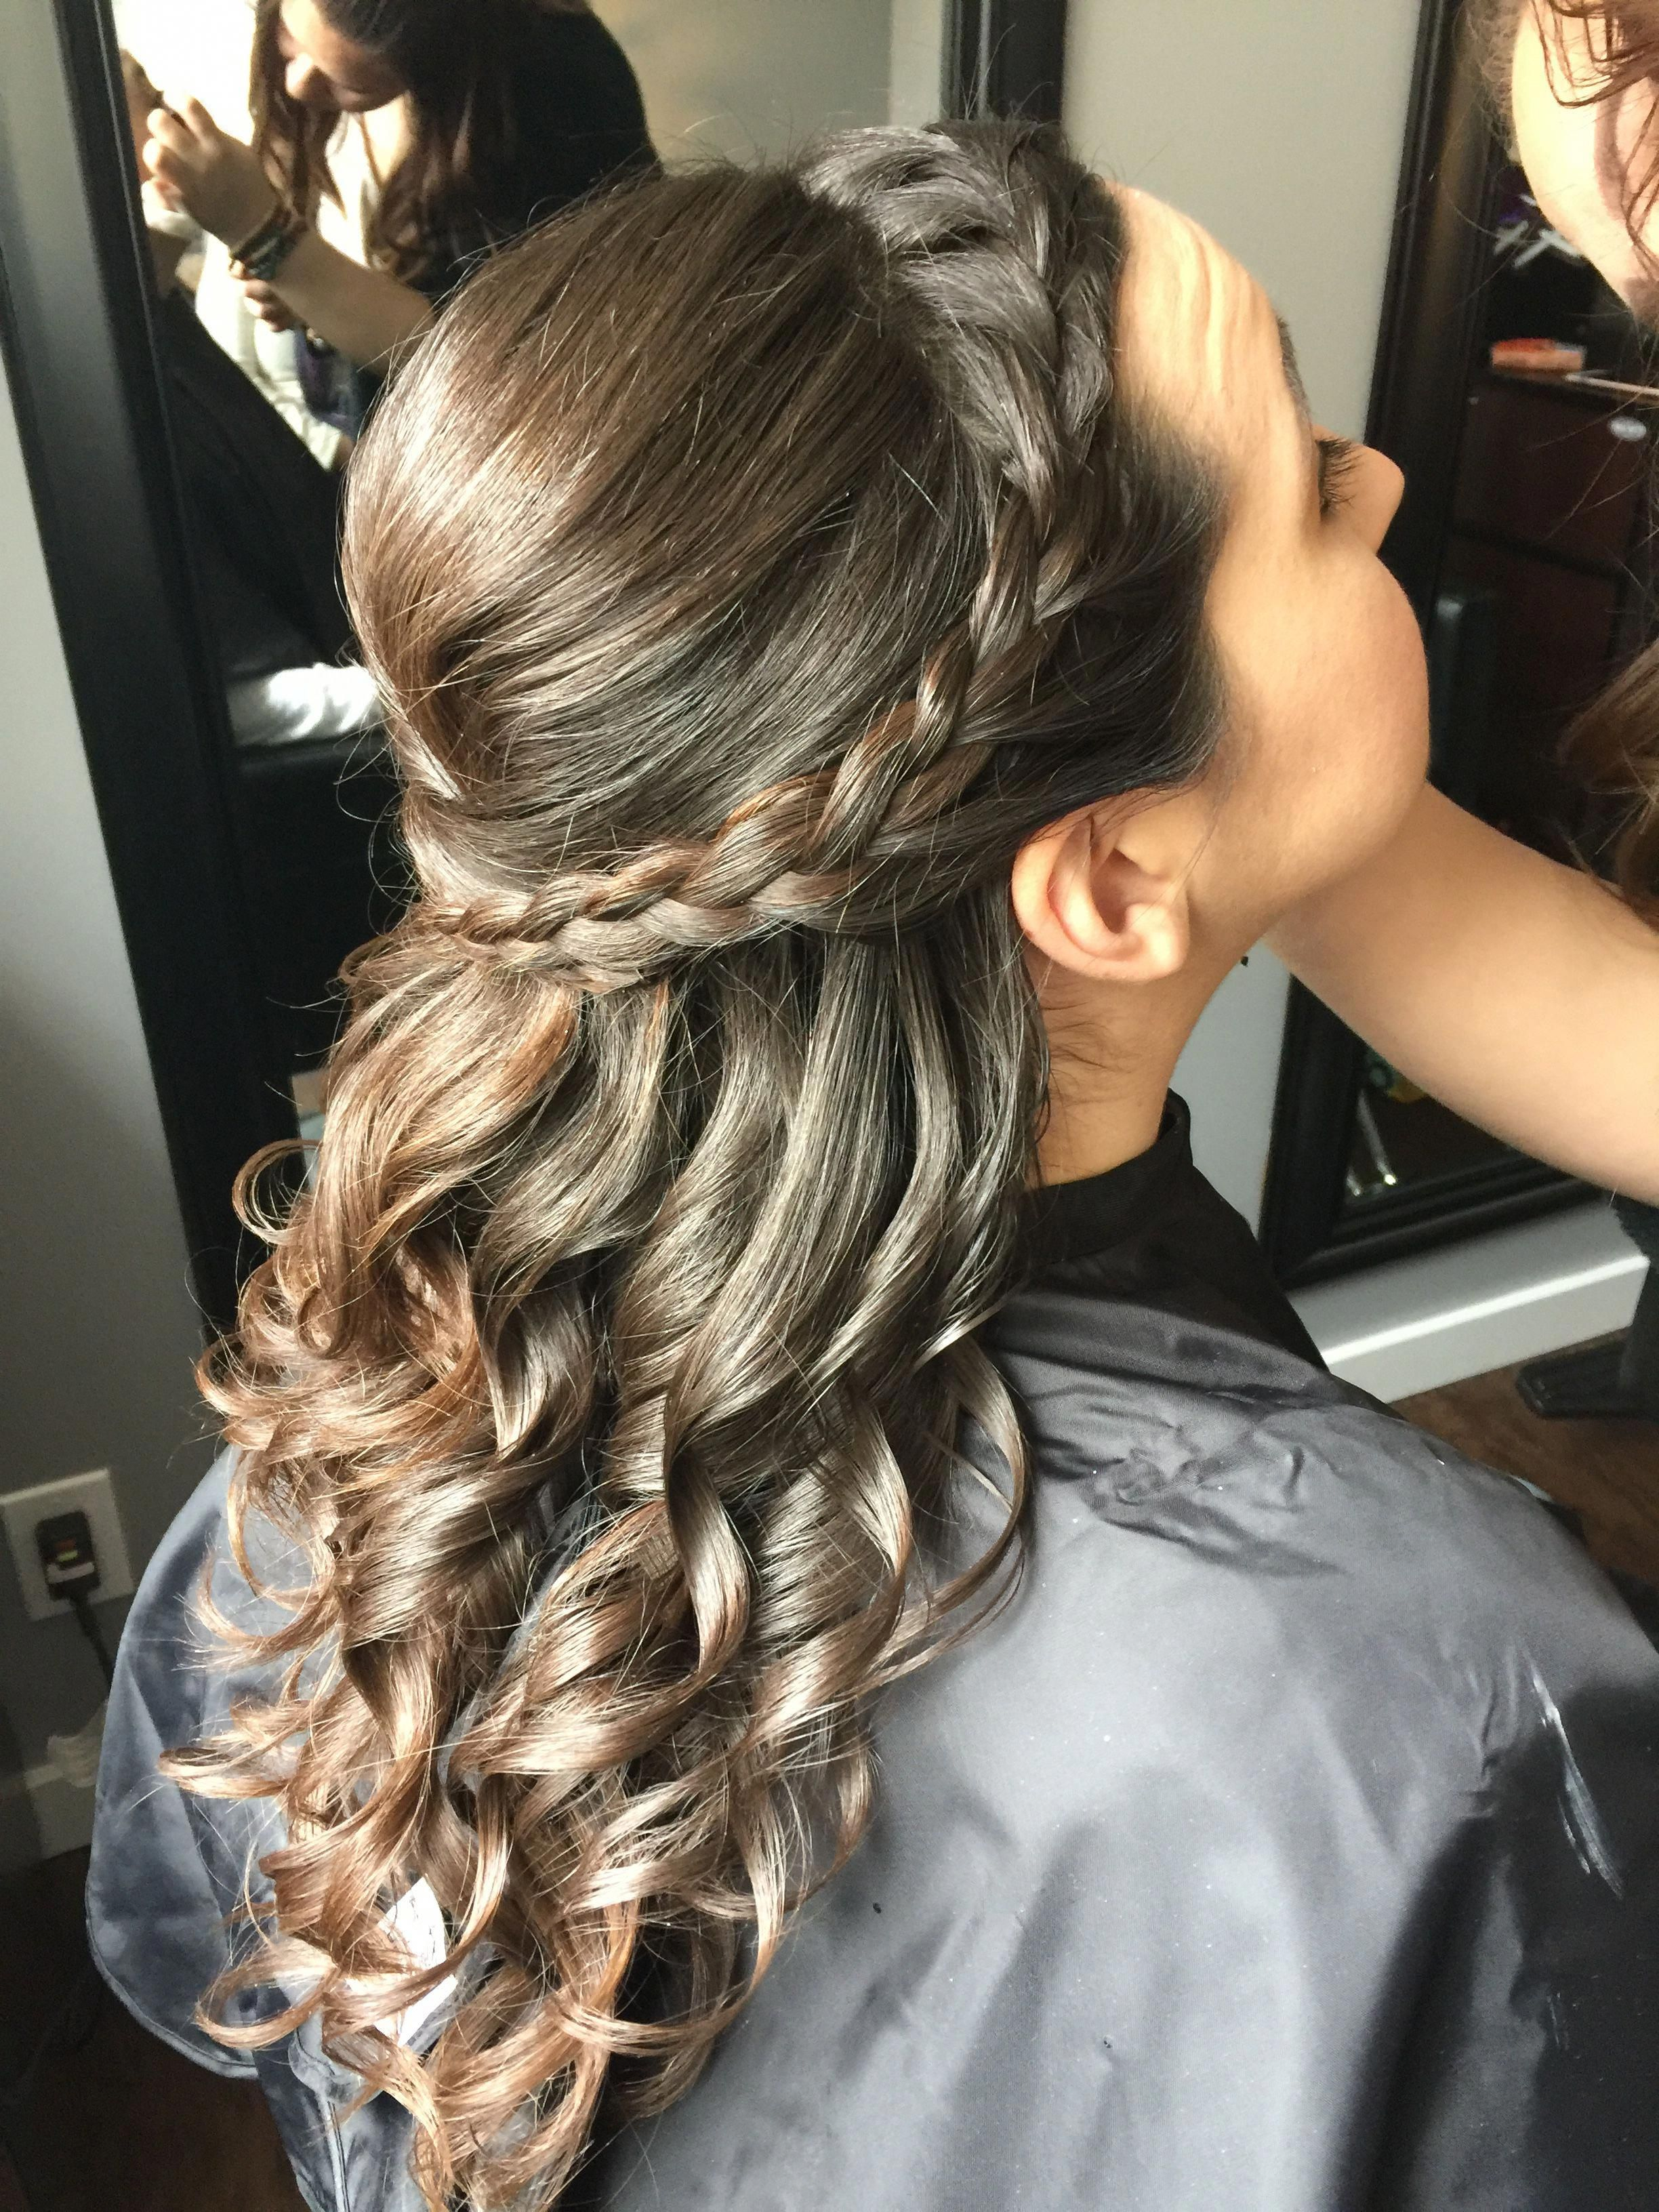 Side Braid Half Up Half Down Style Weddinghairstyleshalfuphalfdown Quince Hairstyles Braid Half Up Half Down Curls For Long Hair